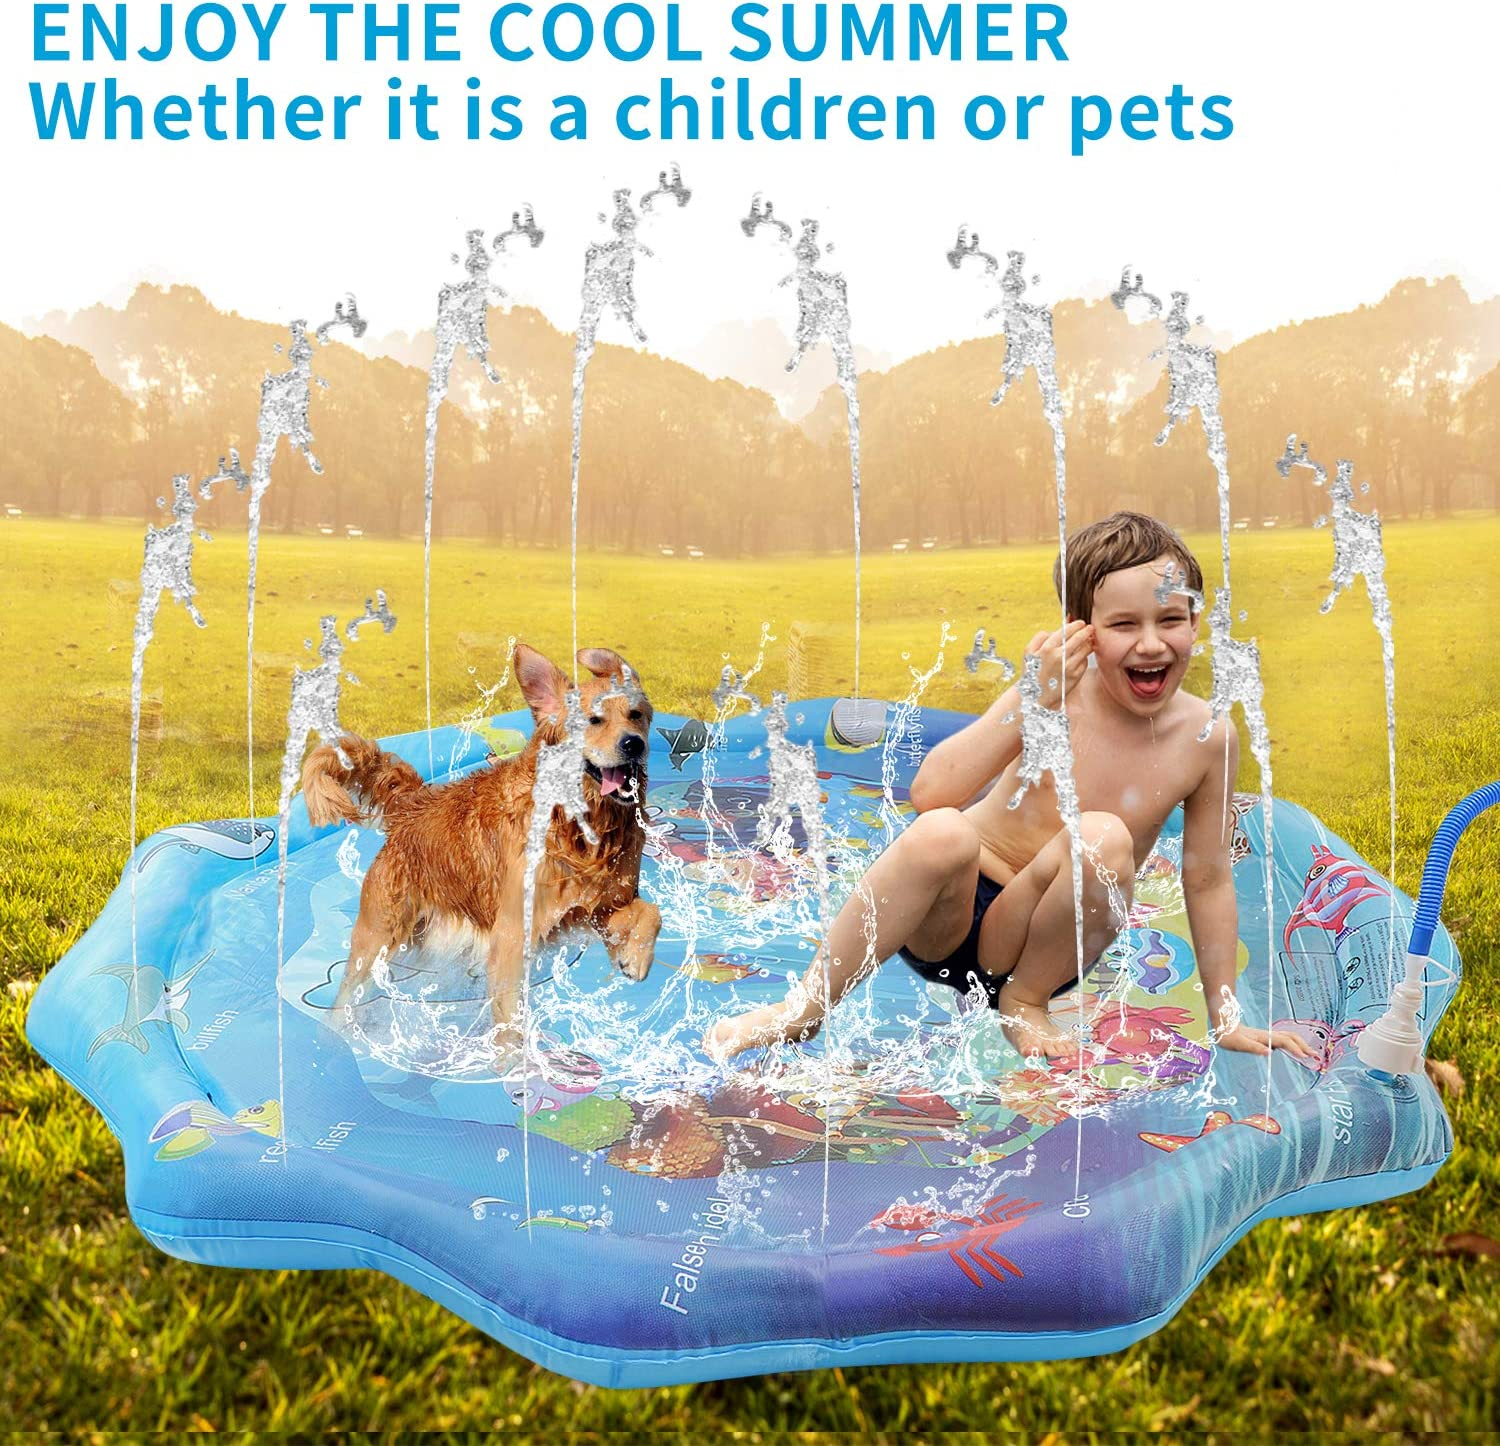 Summer Hot Day Backyard Games Gulymm Splash Pad Pool for Kids or Pet Kids Outdoor Activities for 1-12 Years Sprinkler for Kids Outdoor Toys with A-Z Letters 66.9IN